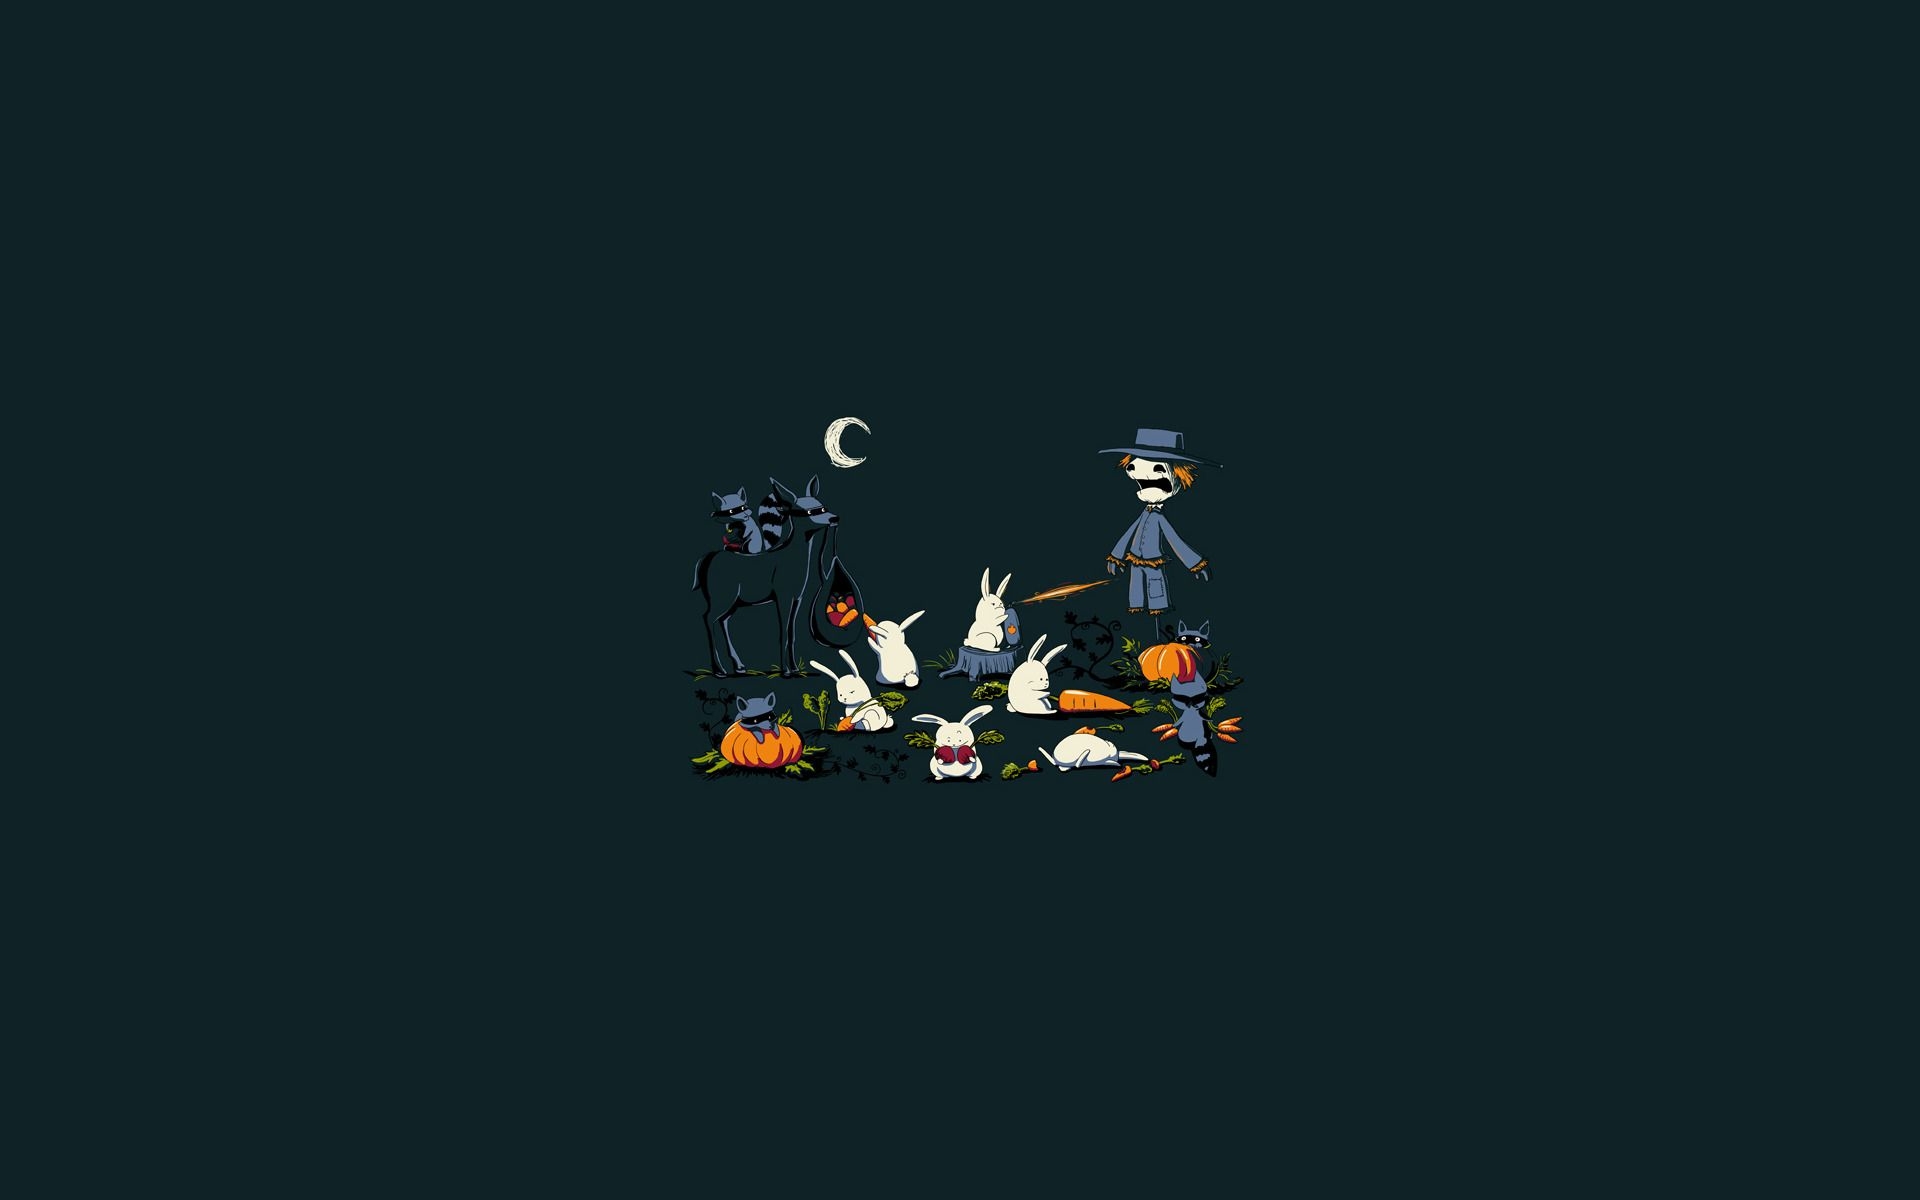 Minimalist Halloween Wallpapers Top Free Minimalist Halloween Backgrounds Wallpaperaccess